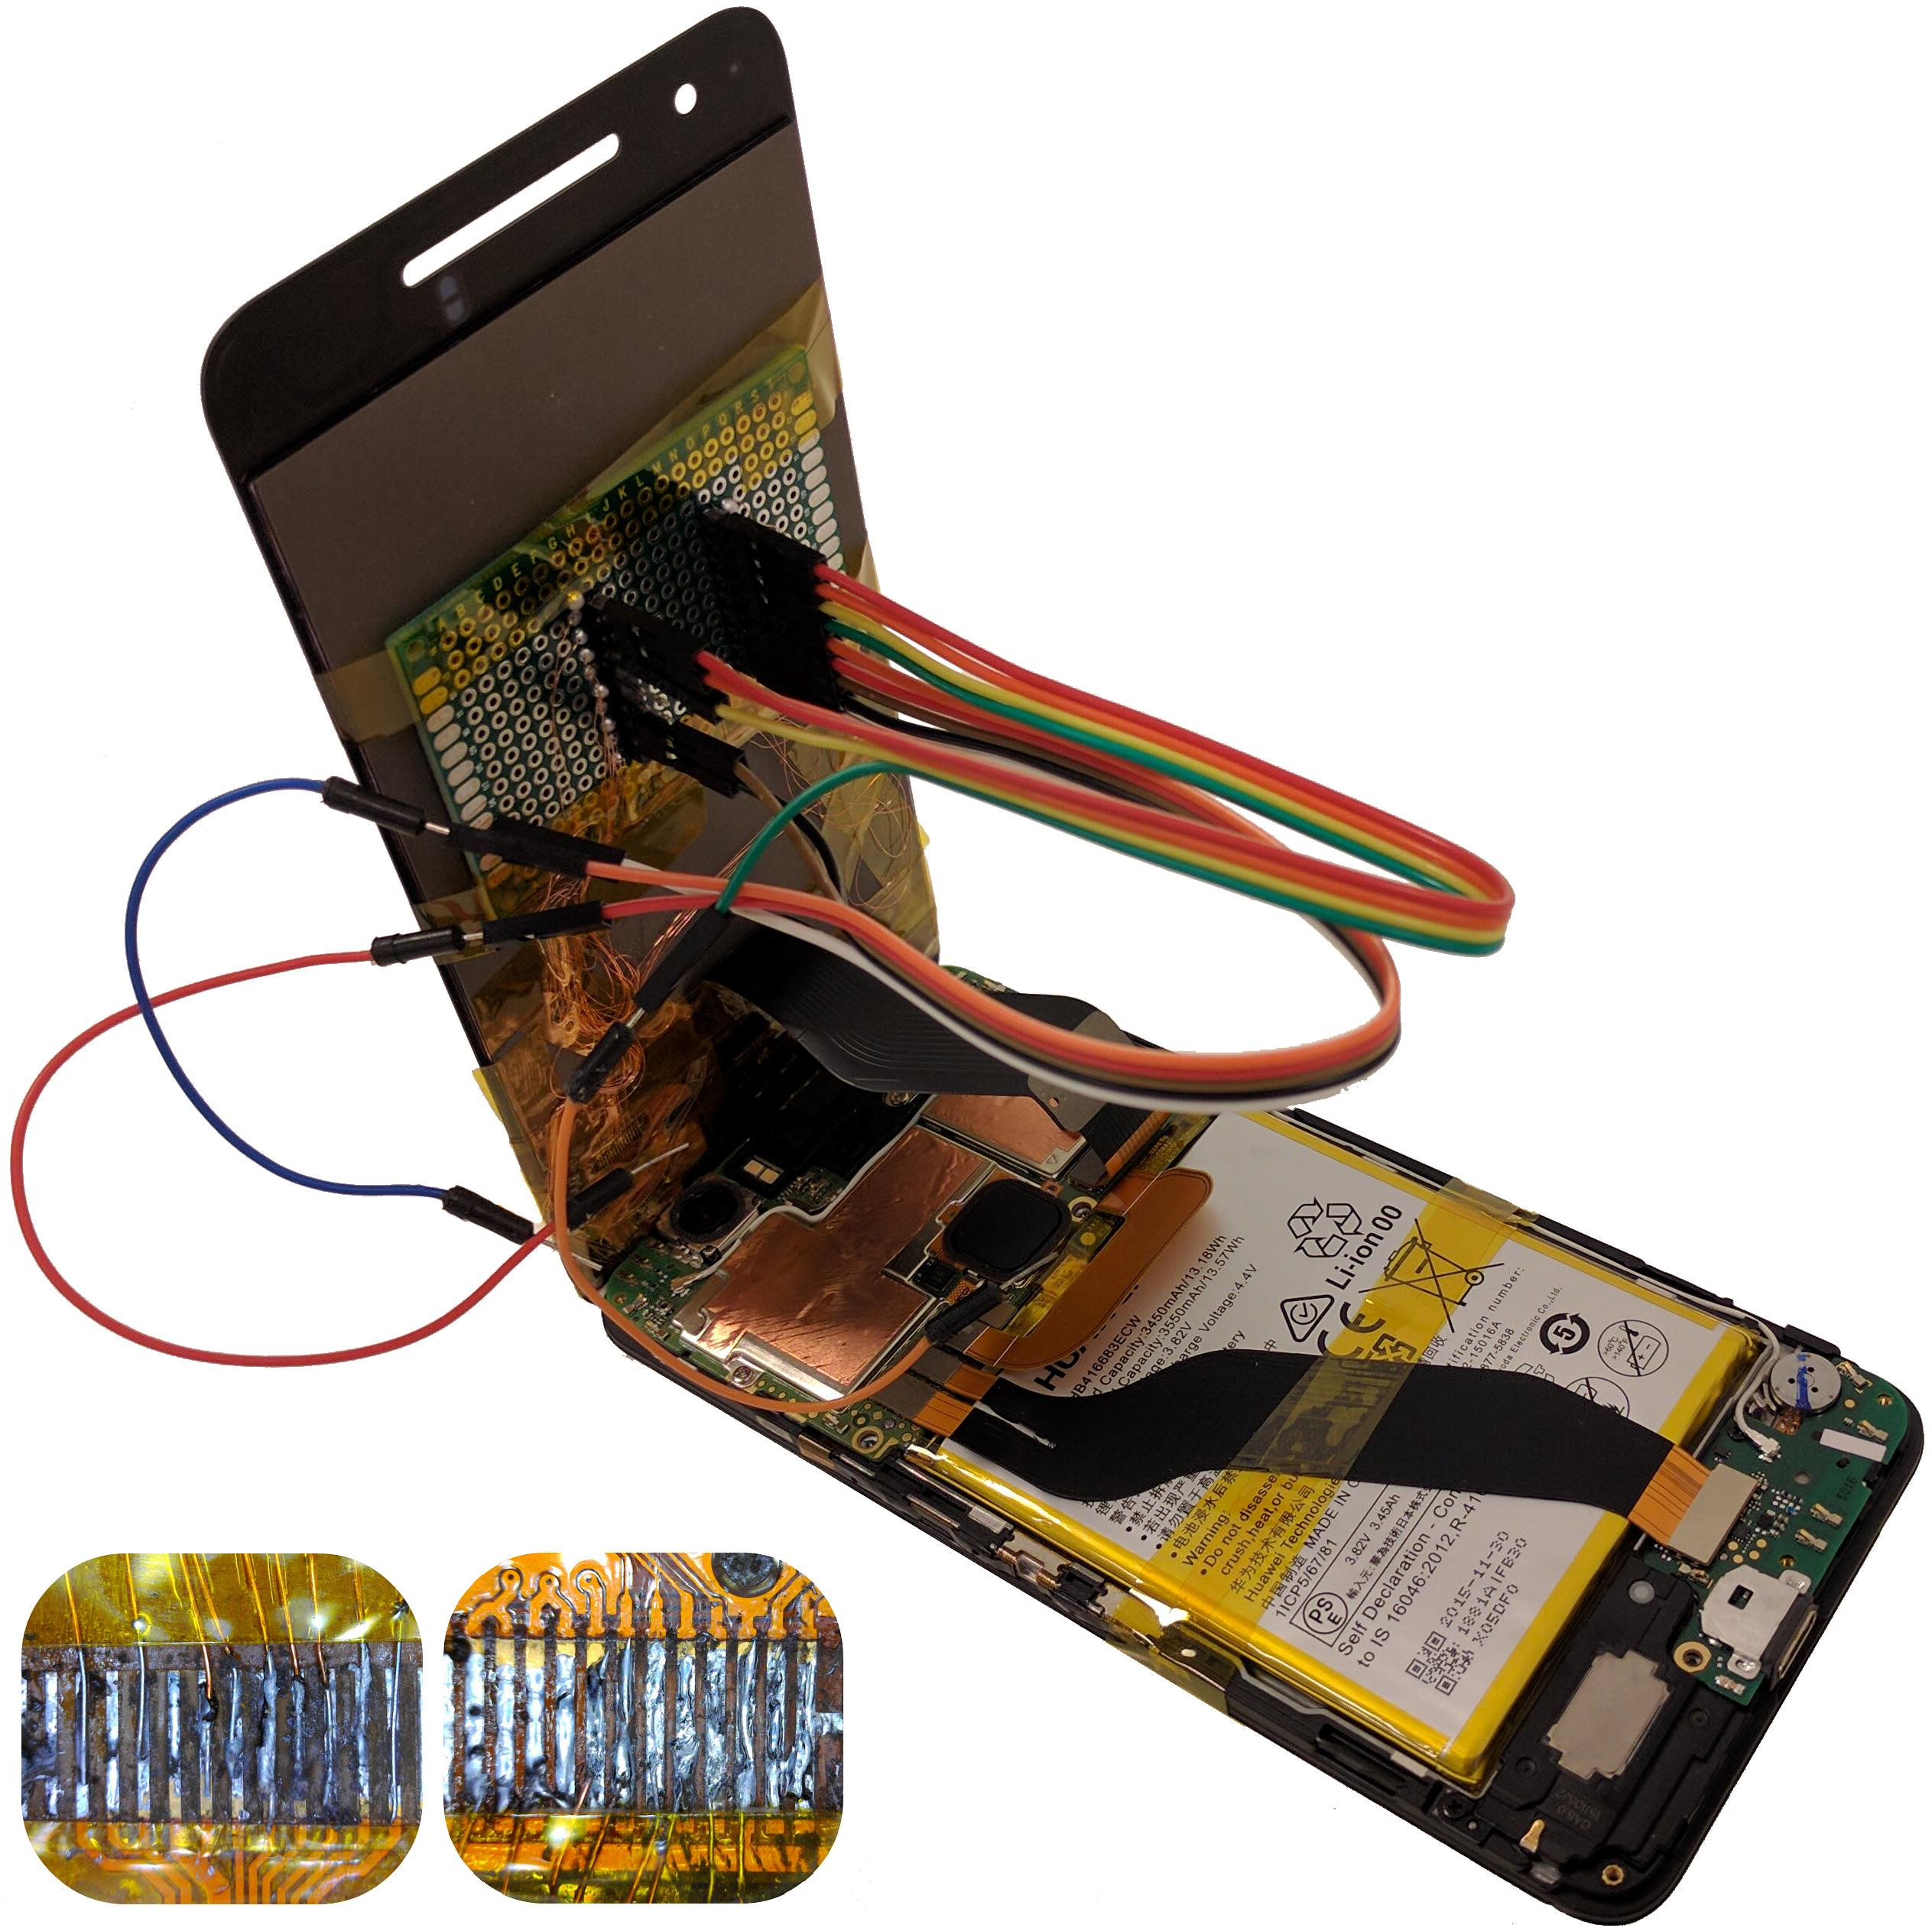 Figure for From Smashed Screens to Smashed Stacks: Attacking Mobile Phones Using Malicious Aftermarket Parts